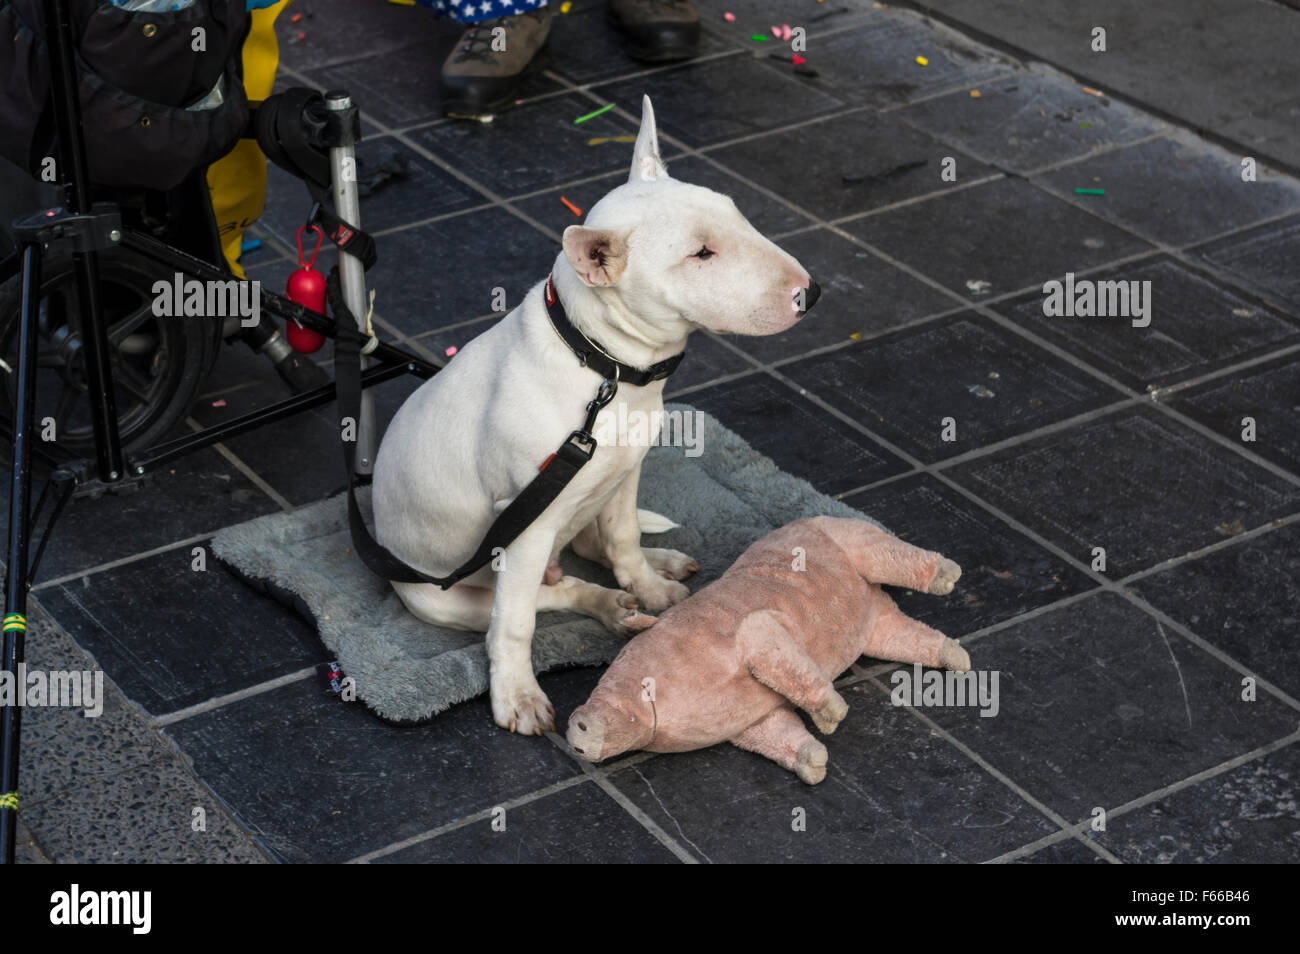 Young white Bull Terrier dog on a leash, looking bored, with a plush pig. - Stock Image